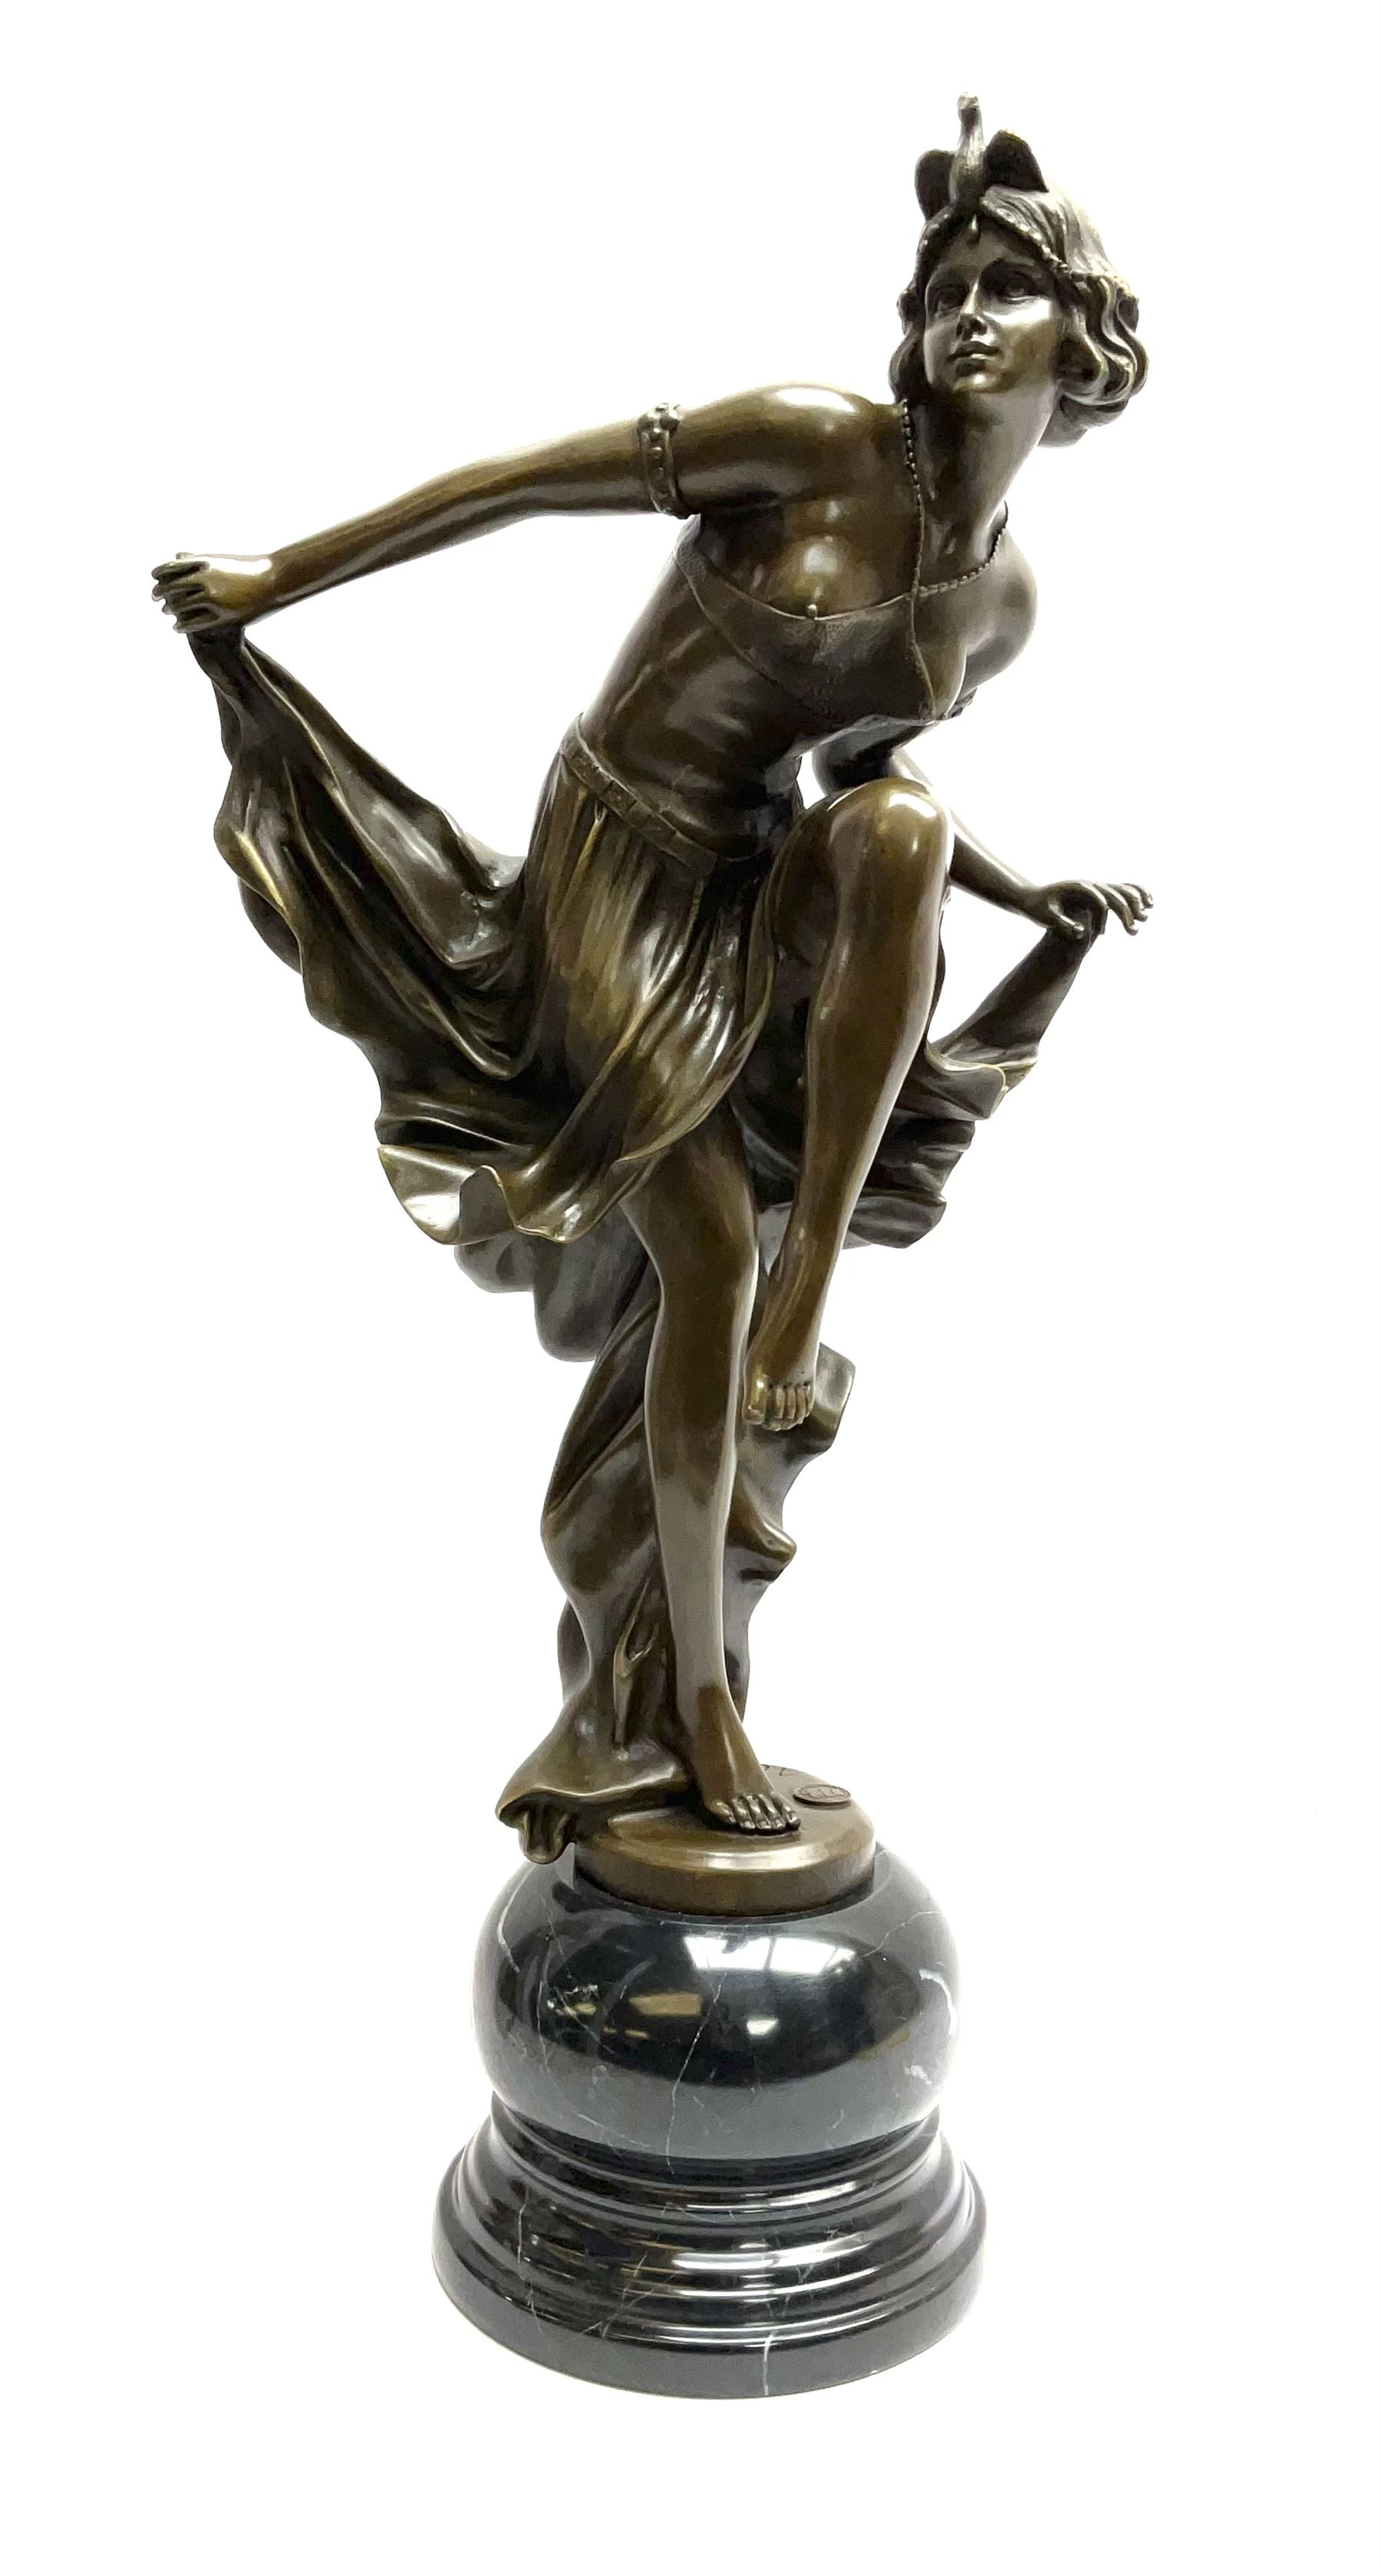 Art Deco style bronze figure of a dancer standing on one leg